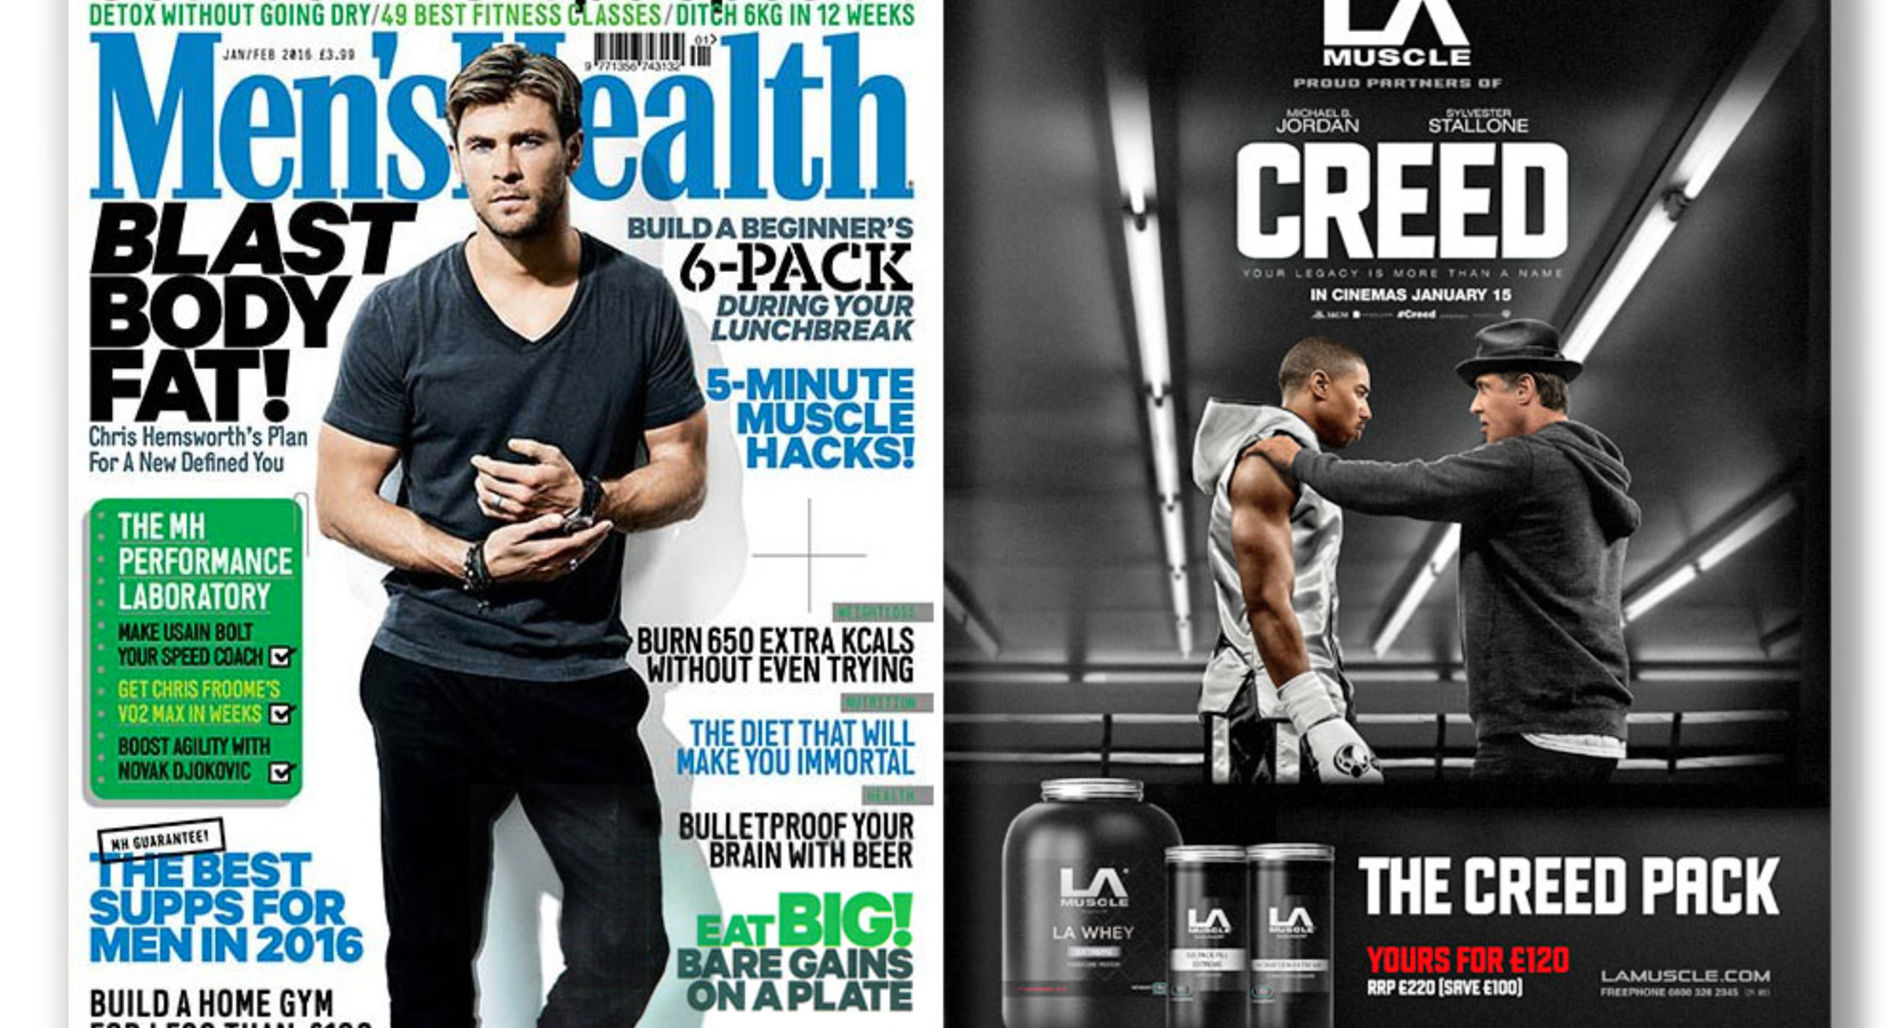 LA Muscle & Creed featured in Men's Health